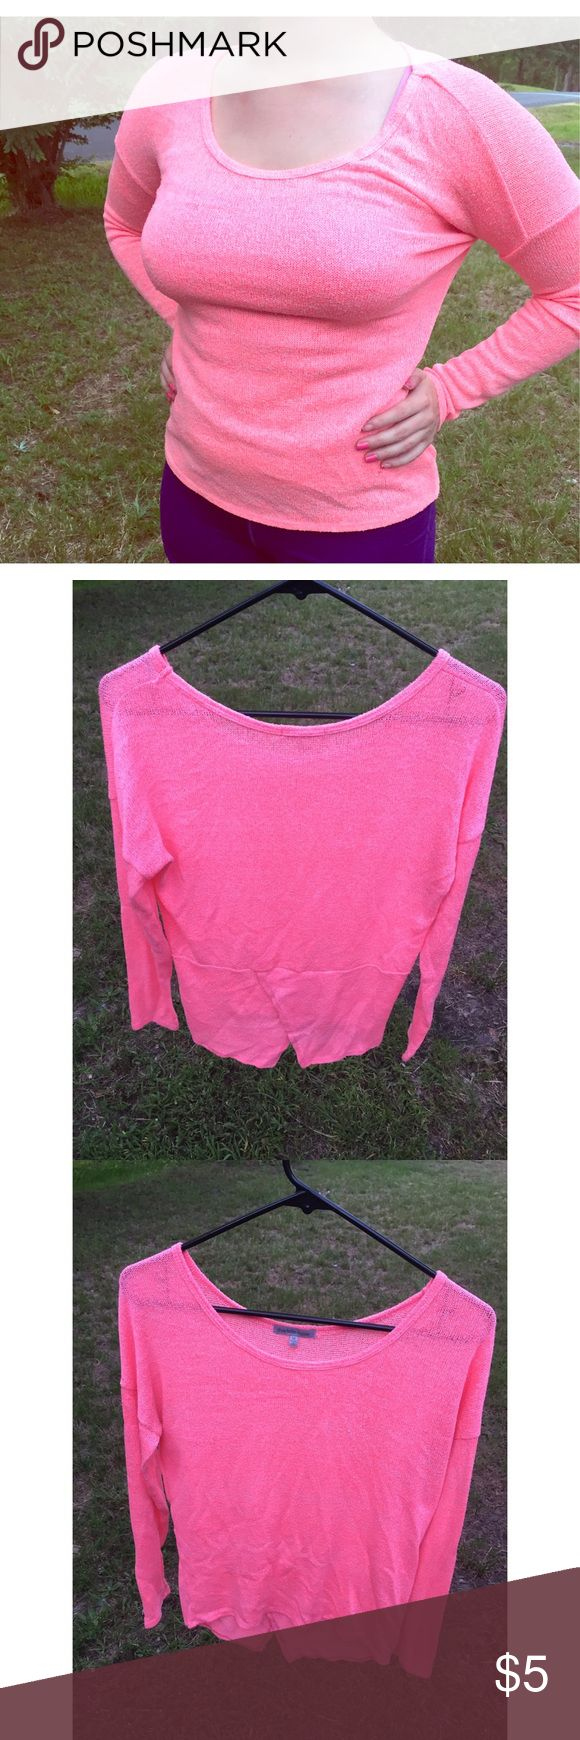 Charlotte Russe pink knit top  Cute knit split-bottom-back top by Charlotte Ruuse, also perfect for the colder season with a cardigan, skinnies, and some riding boots! Price is always negotiable and I am always open to offers! Size tag is pictured.  Charlotte Russe Tops Blouses